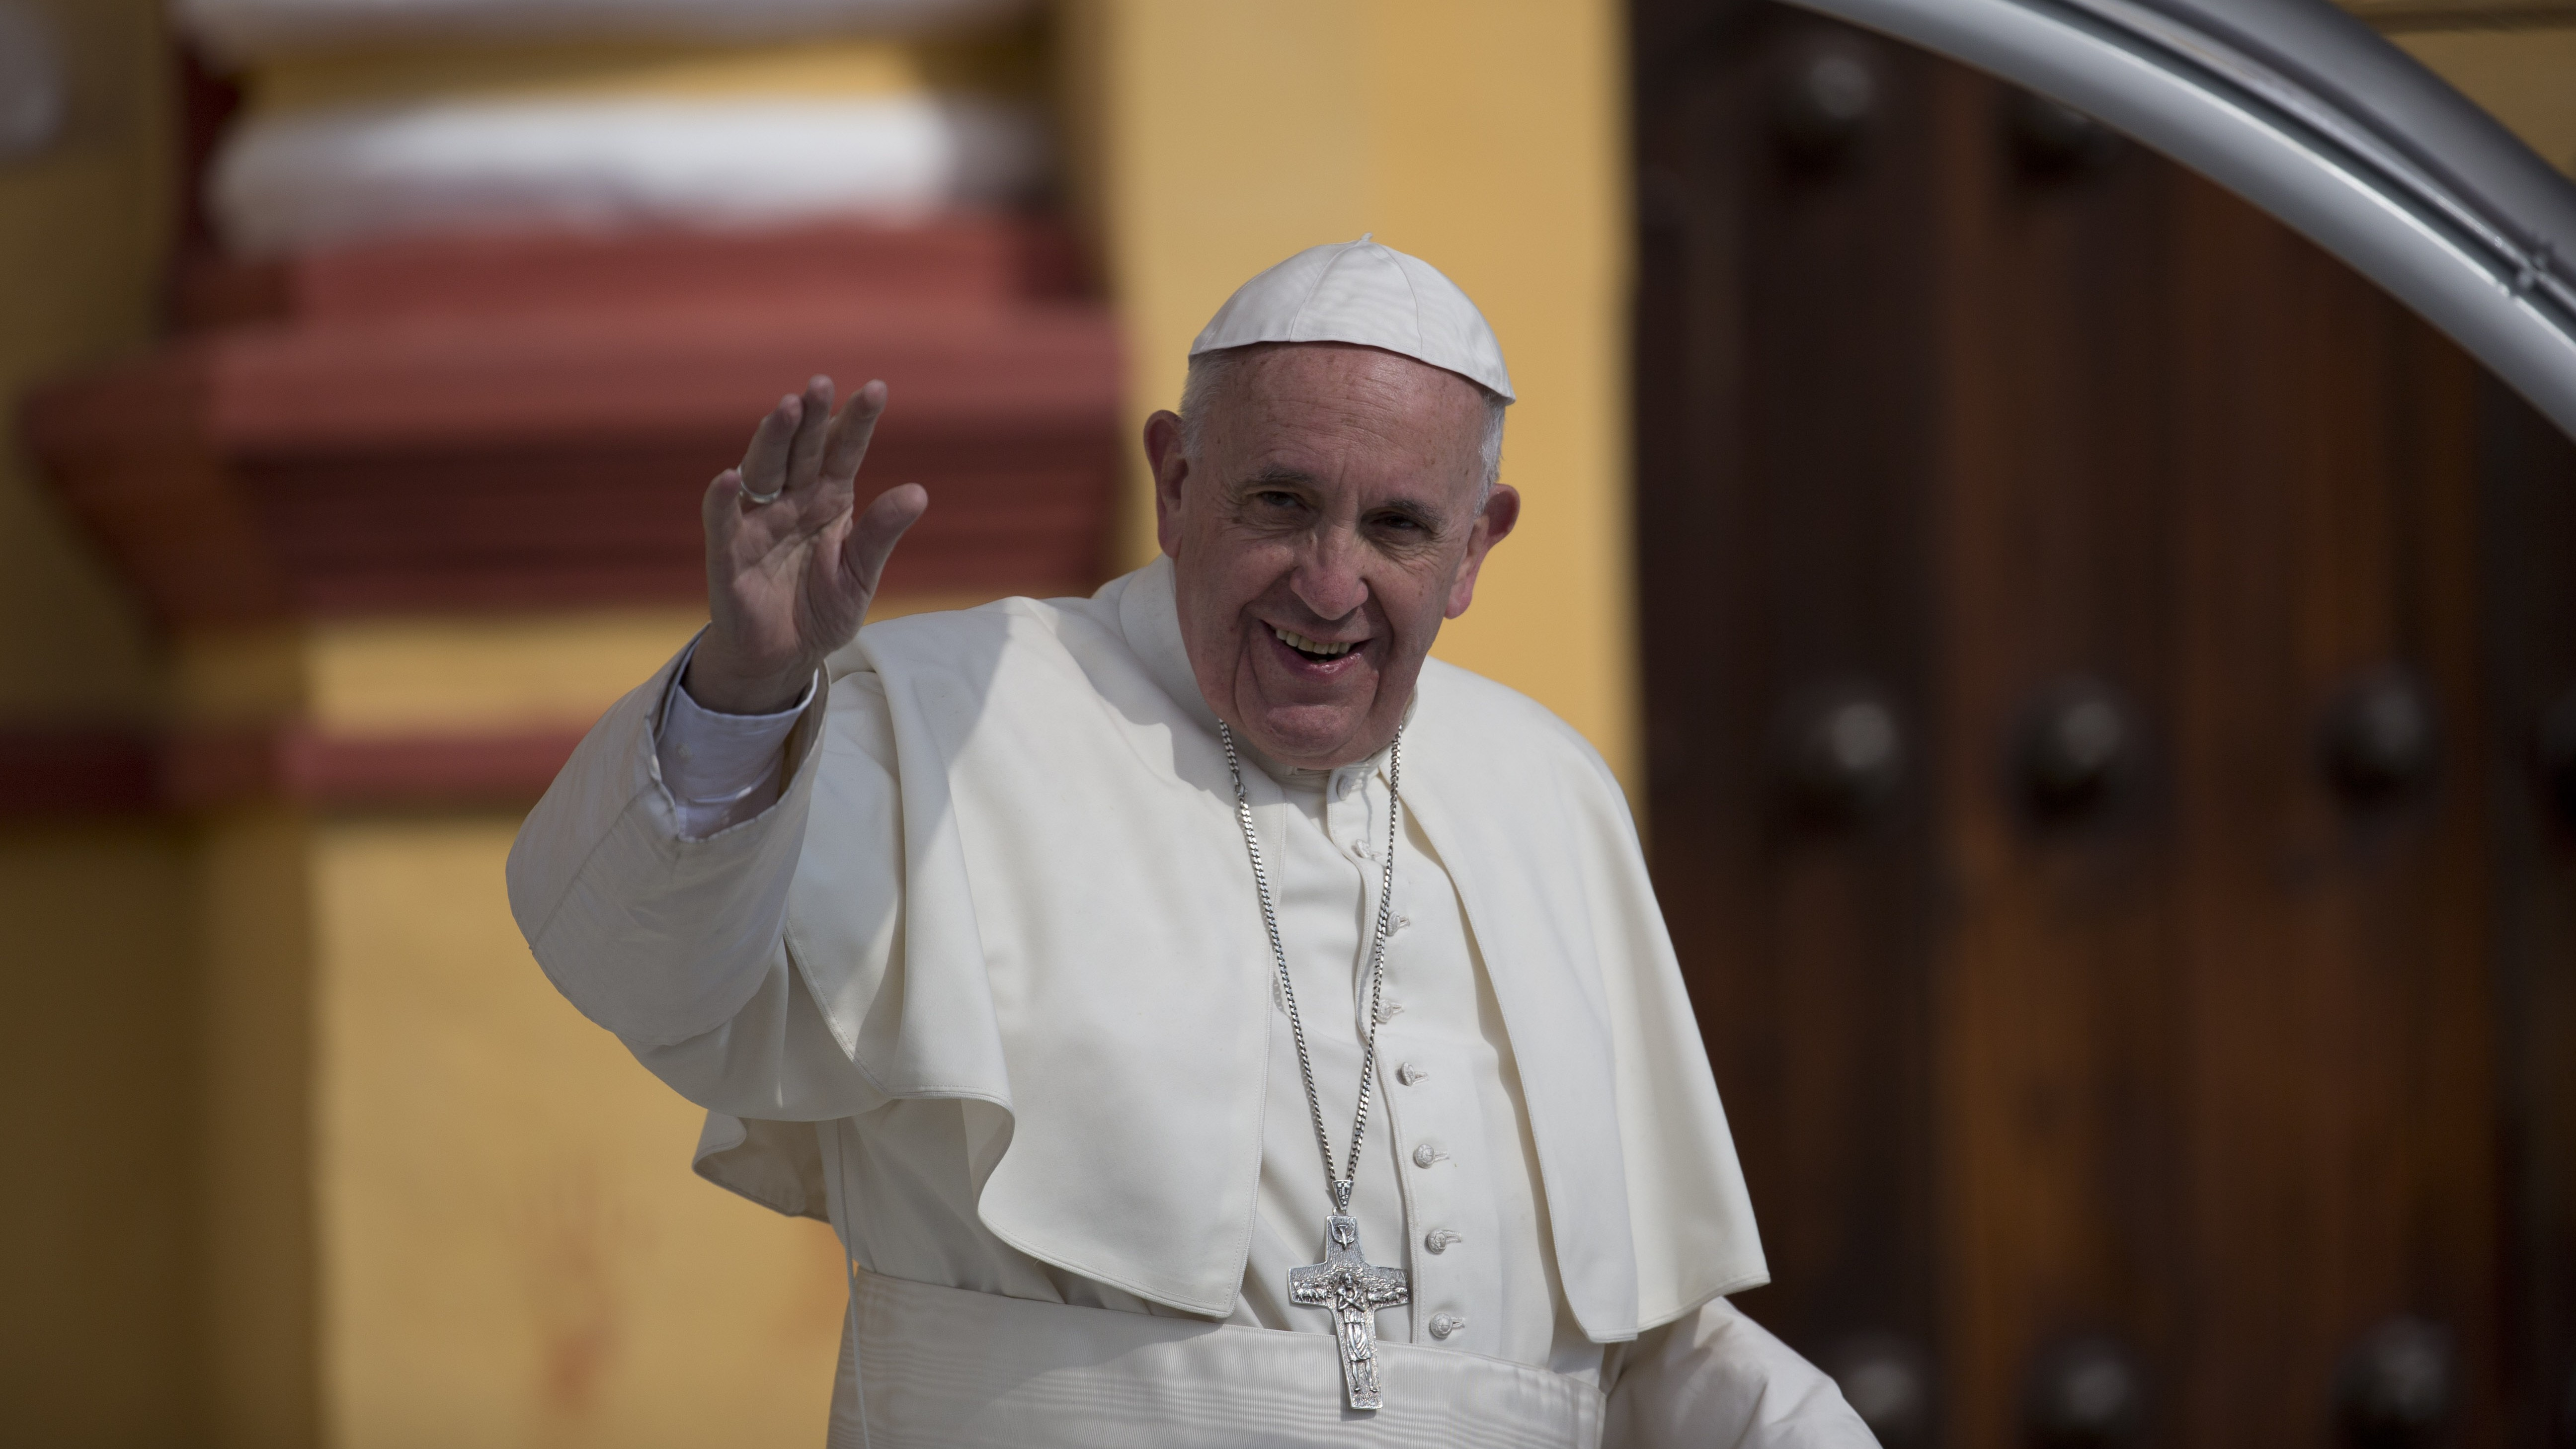 Pope Francis waves to people as he leaves the Cathedral in San Cristobal de las Casas, Mexico, Monday, Feb. 15, 2016. Francis is celebrating Mexico's Indians on Monday with a visit to Chiapas state, a center of indigenous culture, where he presided over a Mass in three native languages thanks to a new Vatican decree approving their use in liturgy. The visit is also aimed at boosting the faith in the least Catholic state in Mexico. ()